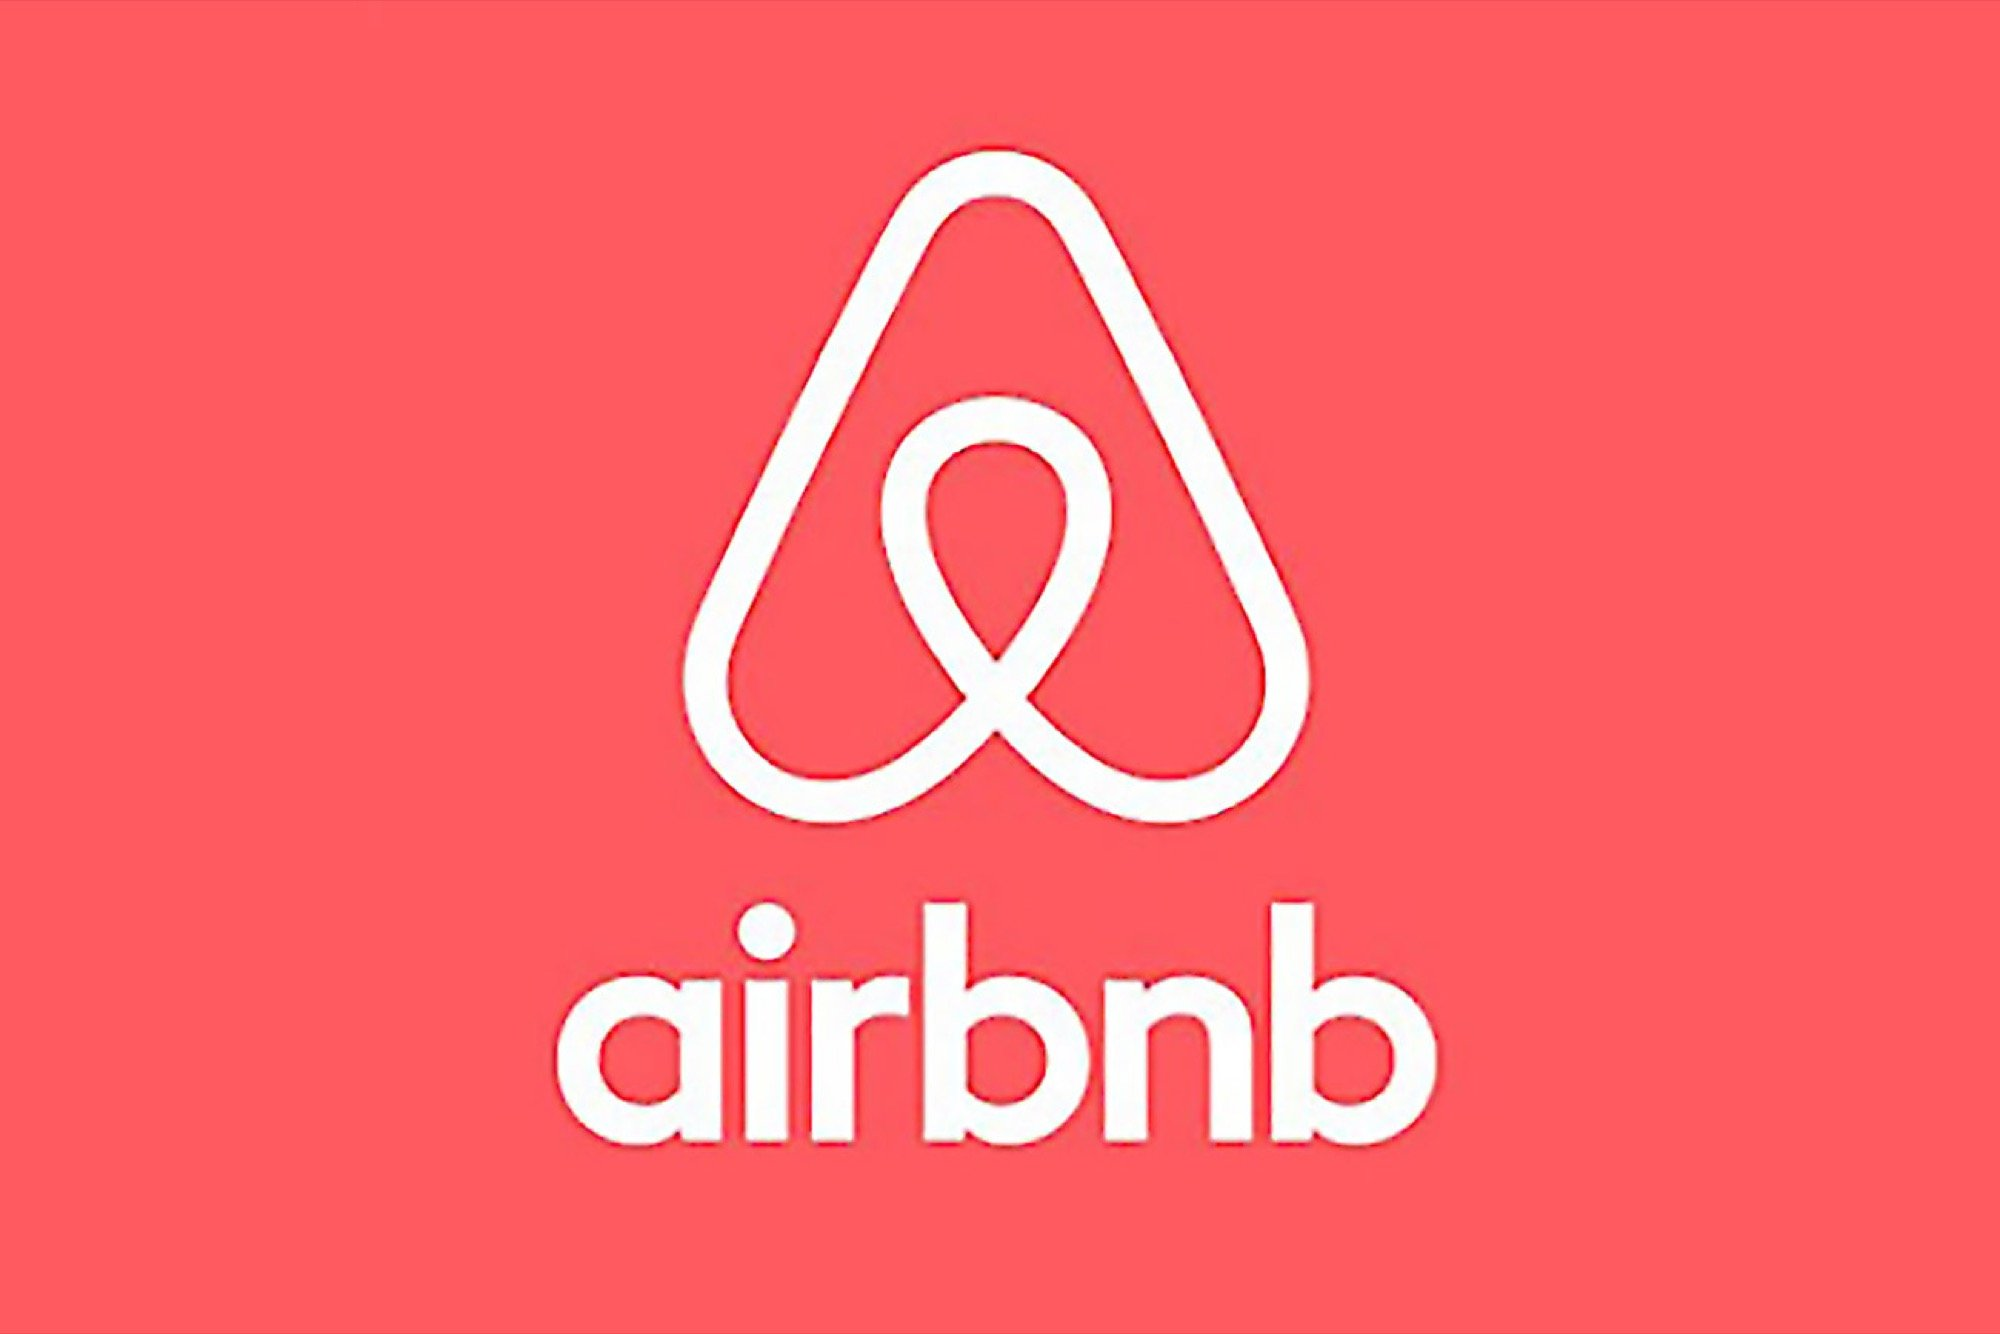 http://images.getcardable.com/sg/images/es/airbnb.jpg